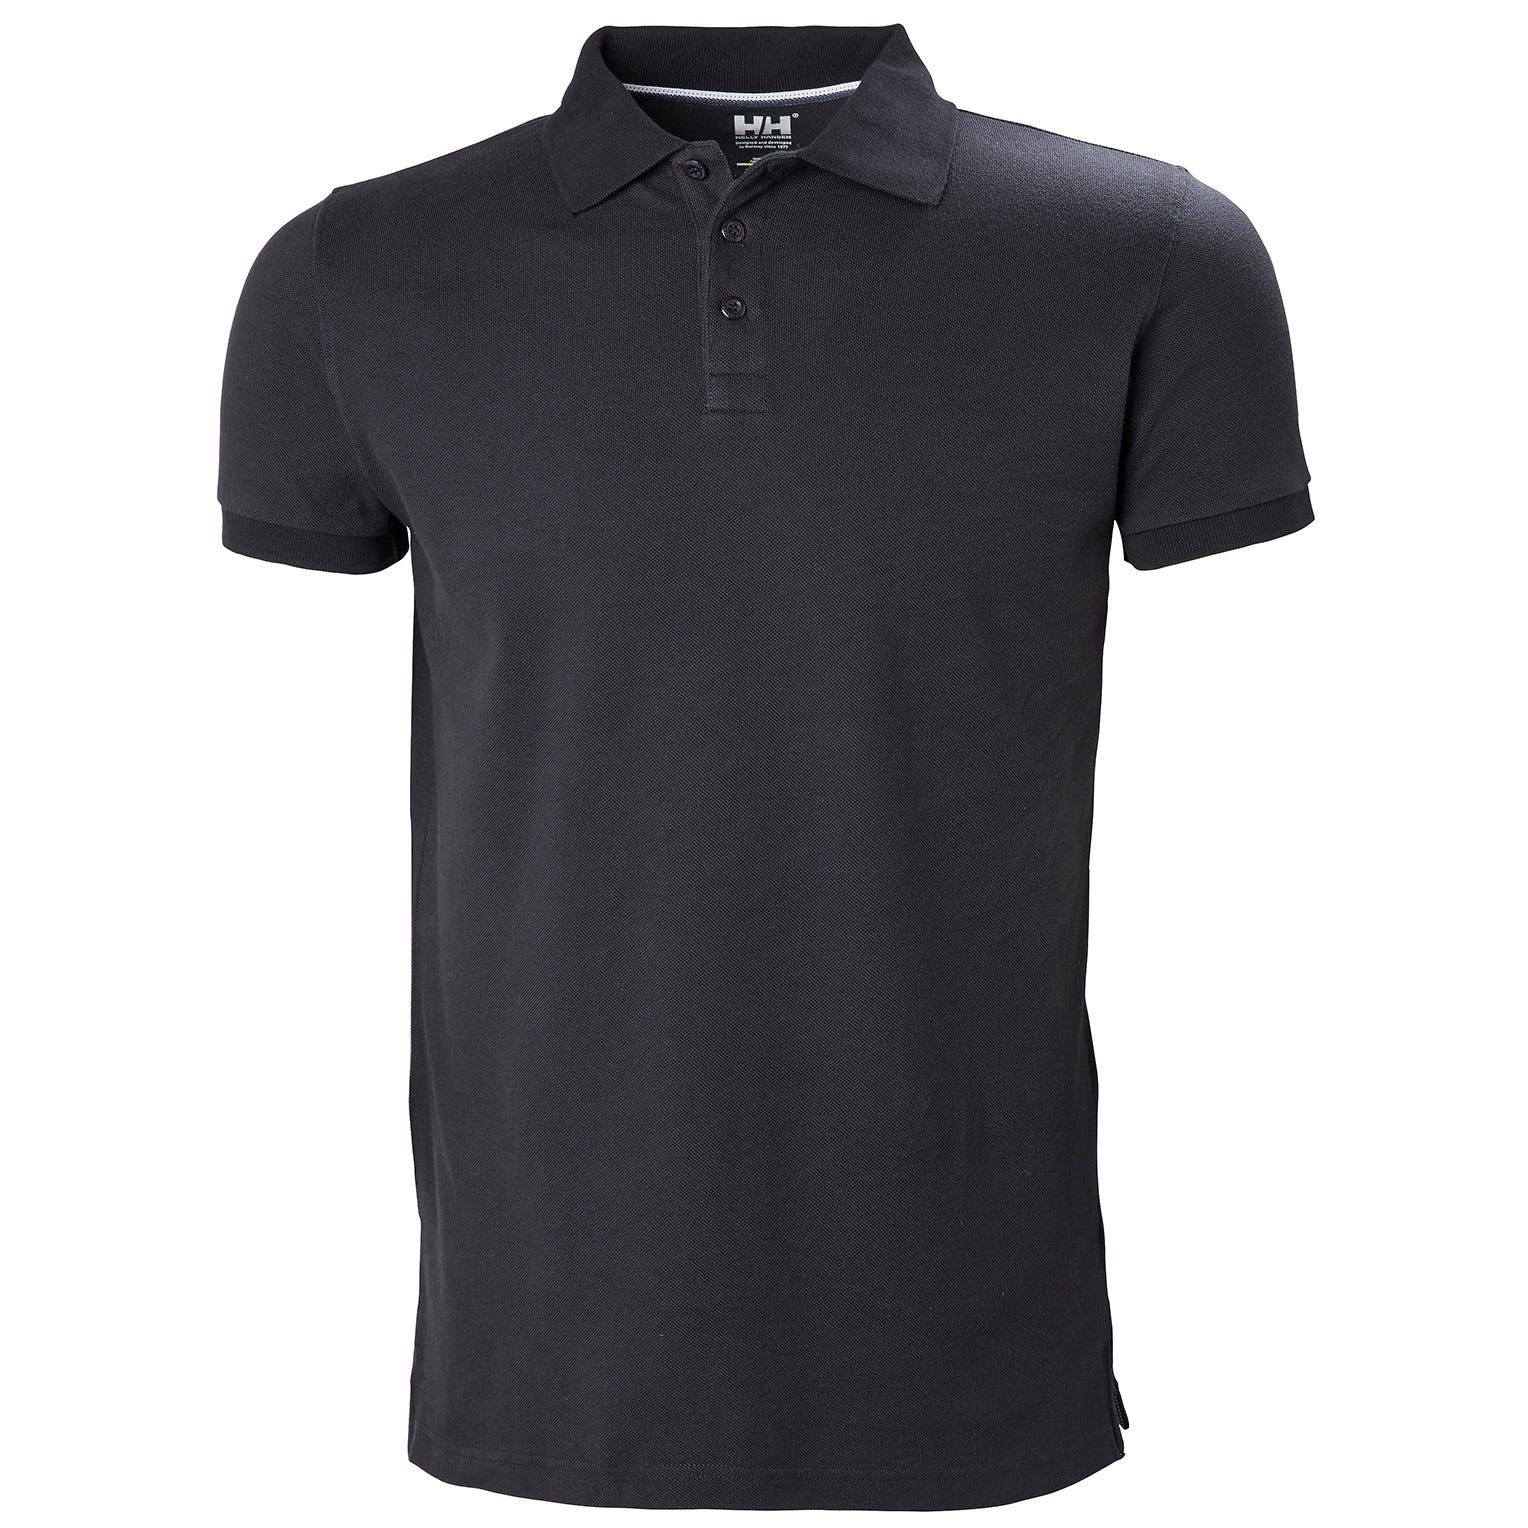 Mens Crew Cotton Pique Quick-dry Polo Shirt | Helly Hansen Mens Performance Wicking Navy XS